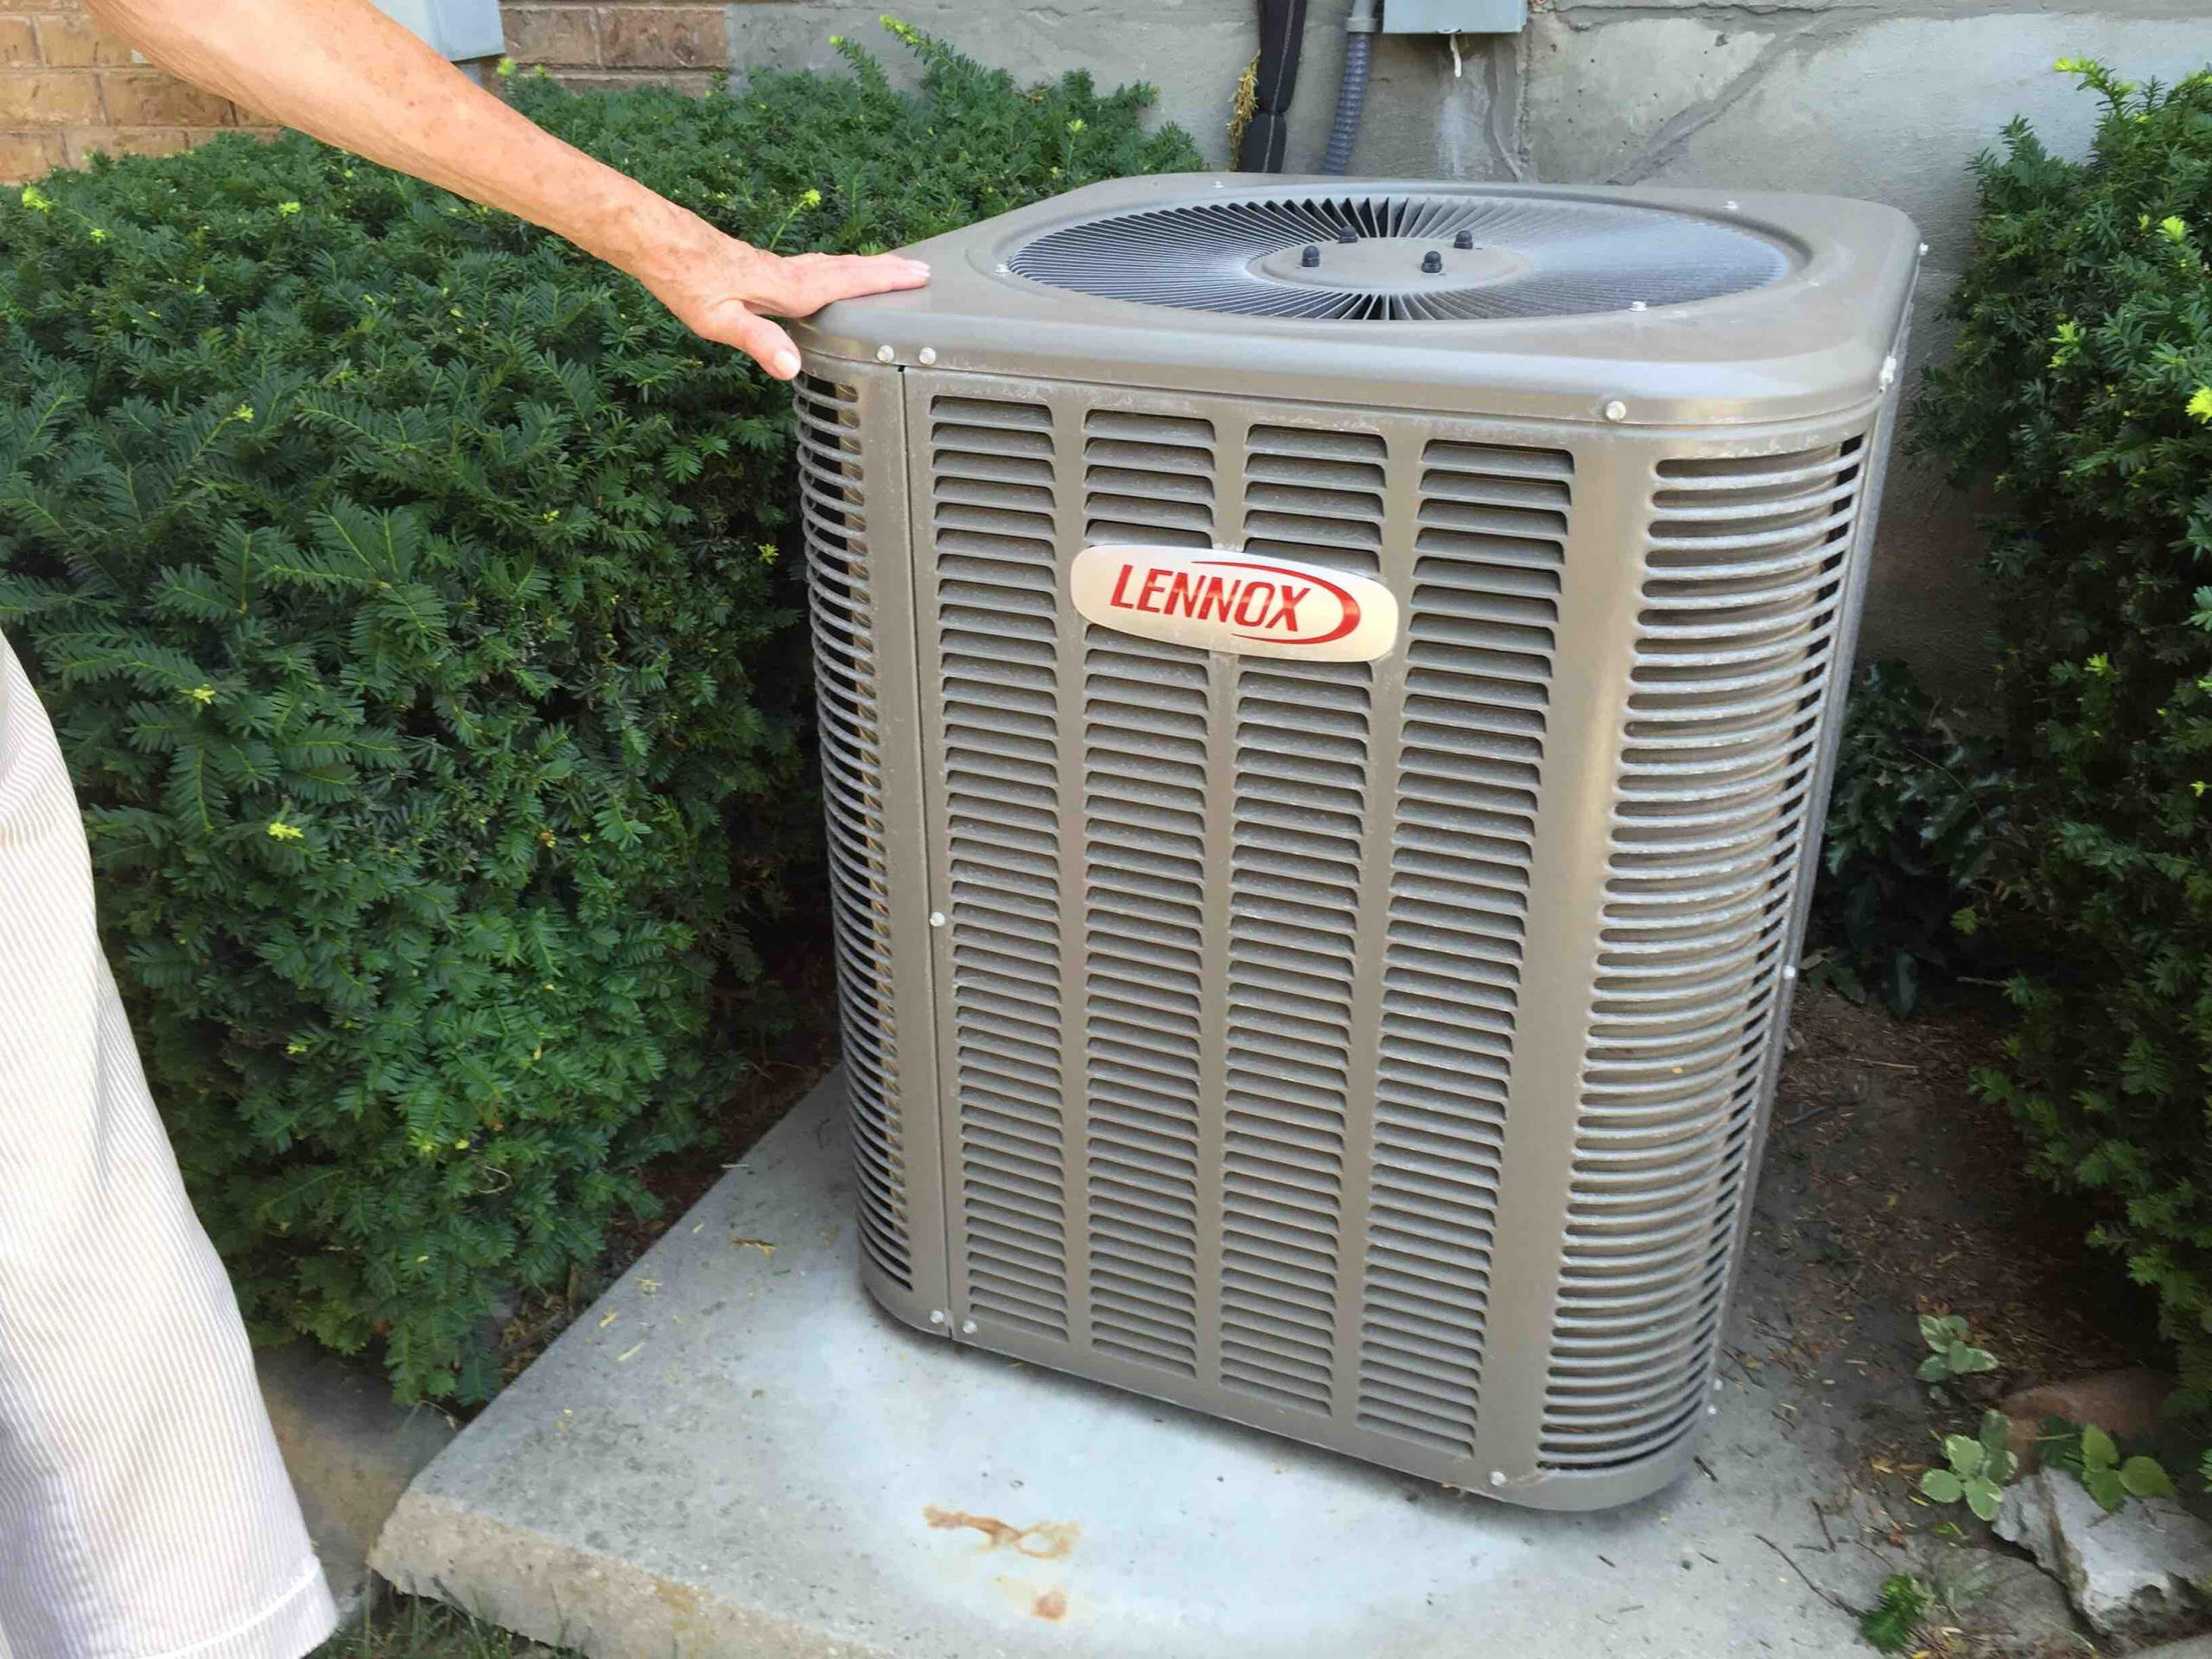 Millcreek, UT - serviced and charged Lennox air conditioner